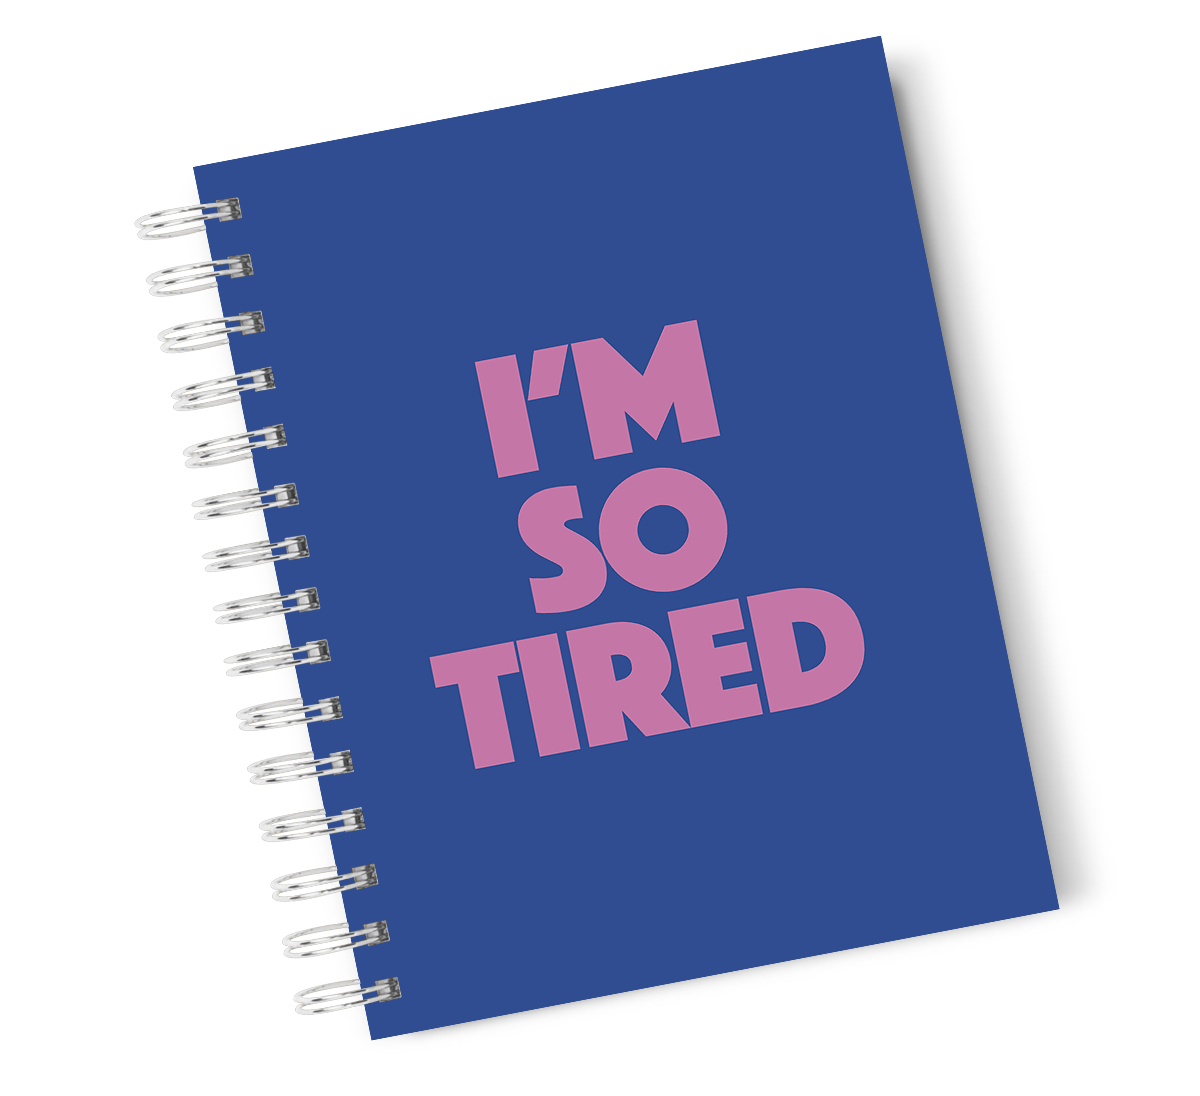 A4 Hardcover Notebook Tired Typography Purple Spiral Notebook with High Quality Bright White Paper